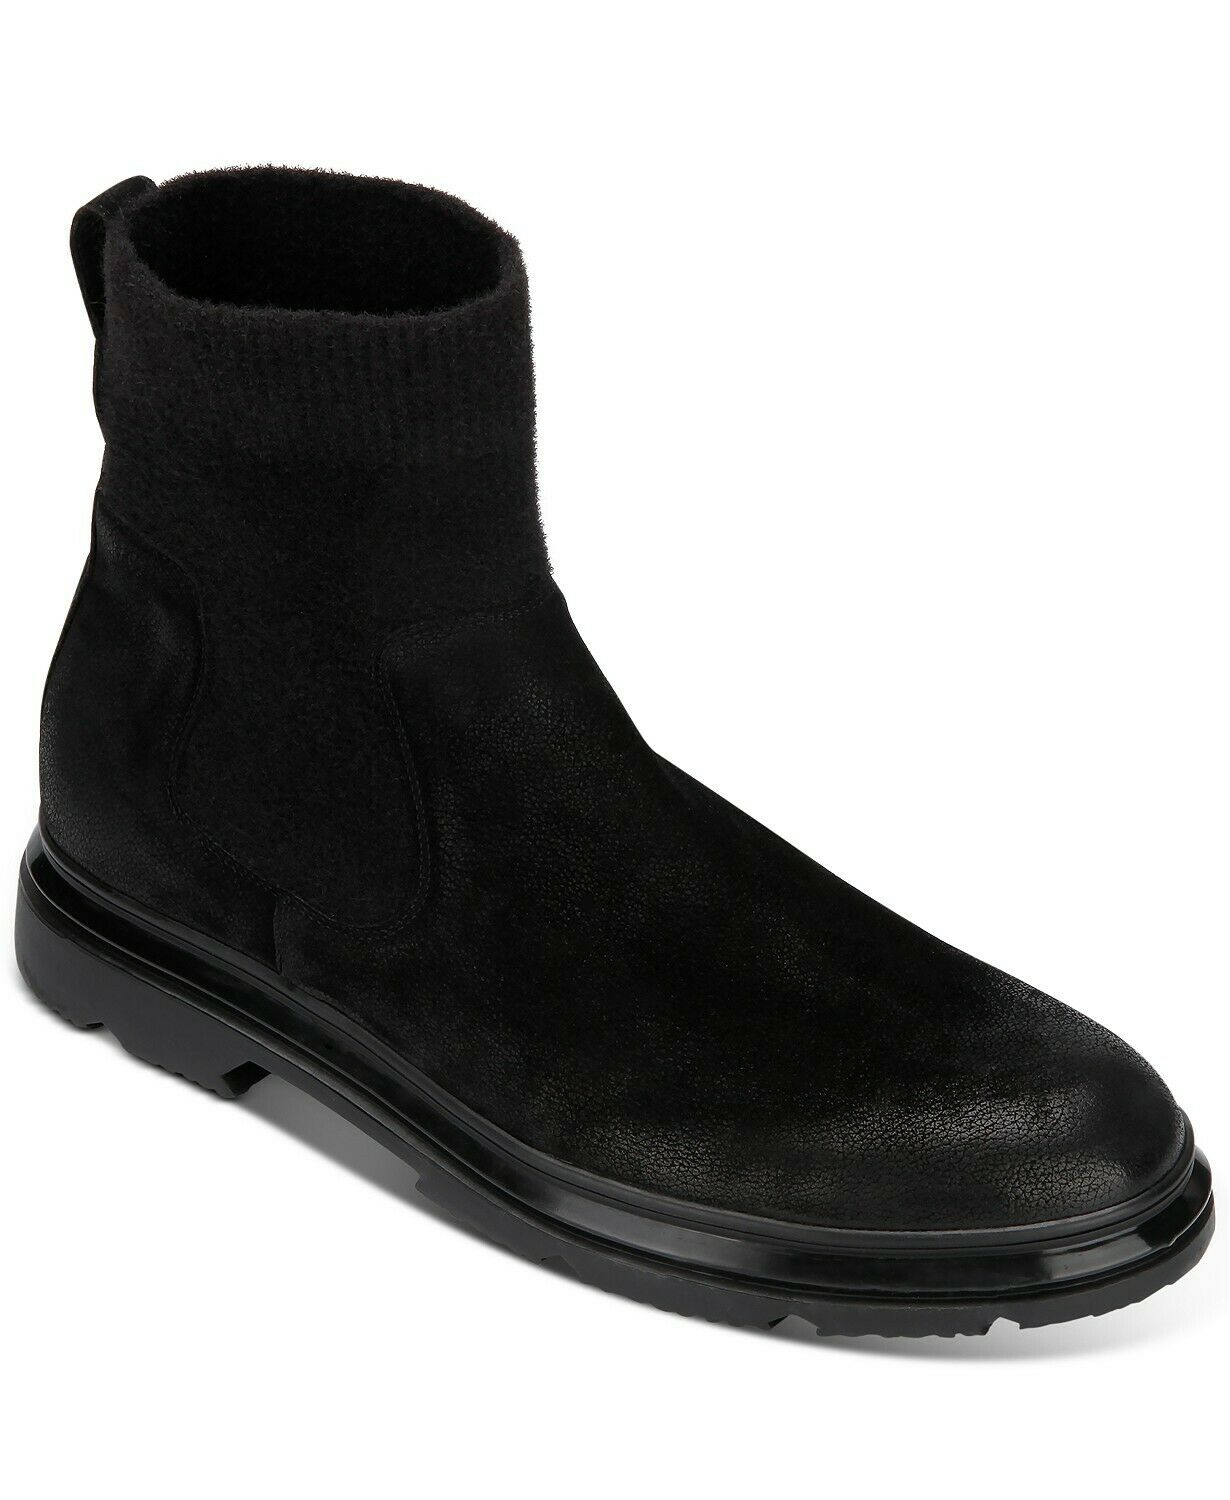 Kenneth Cole New York Men's Carter Boot Nubuck Leather Two Slip-On Boots